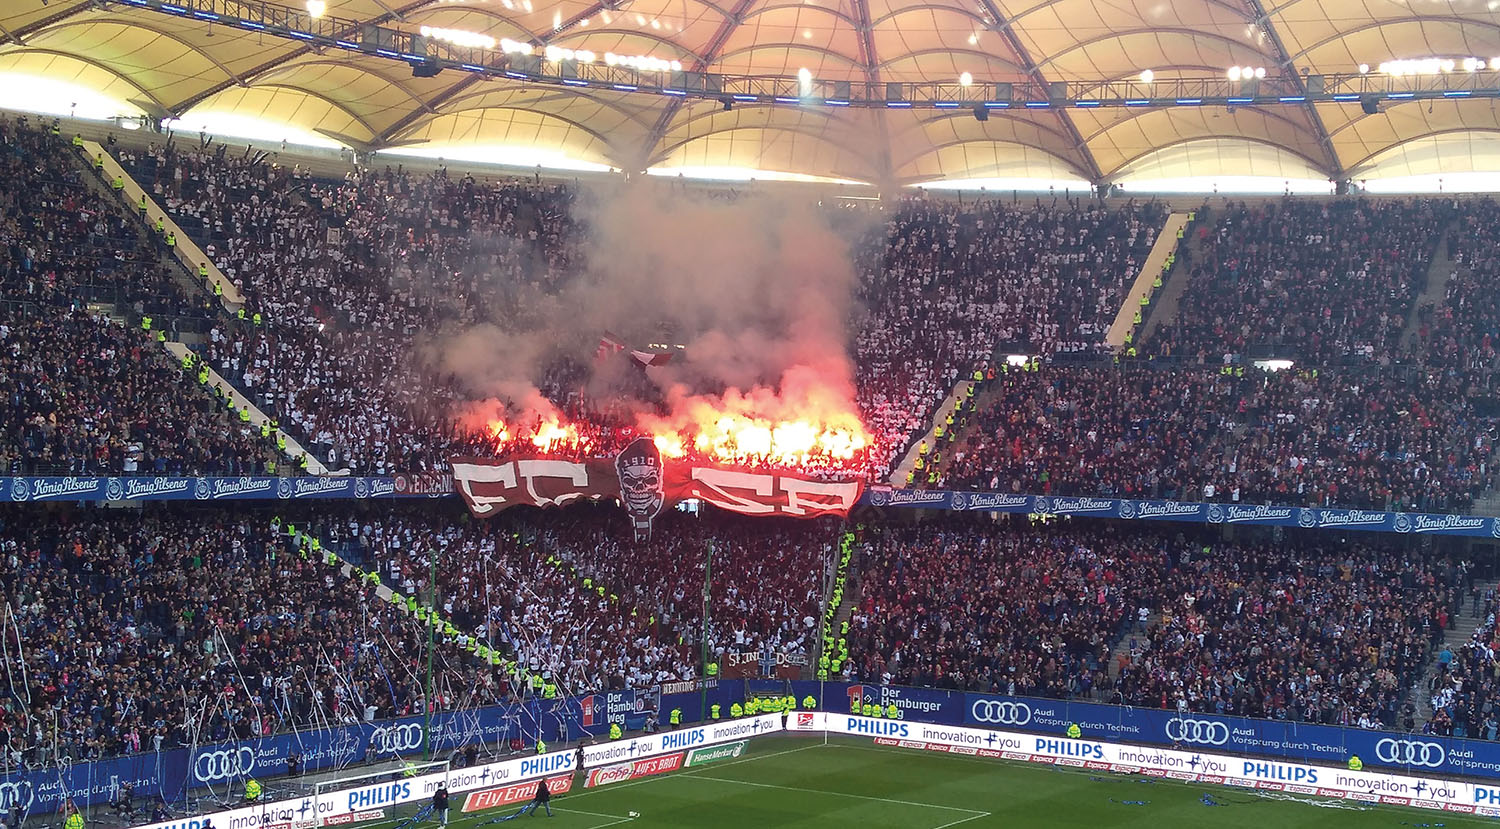 St Pauli fans are lighting up the Hamburg derby